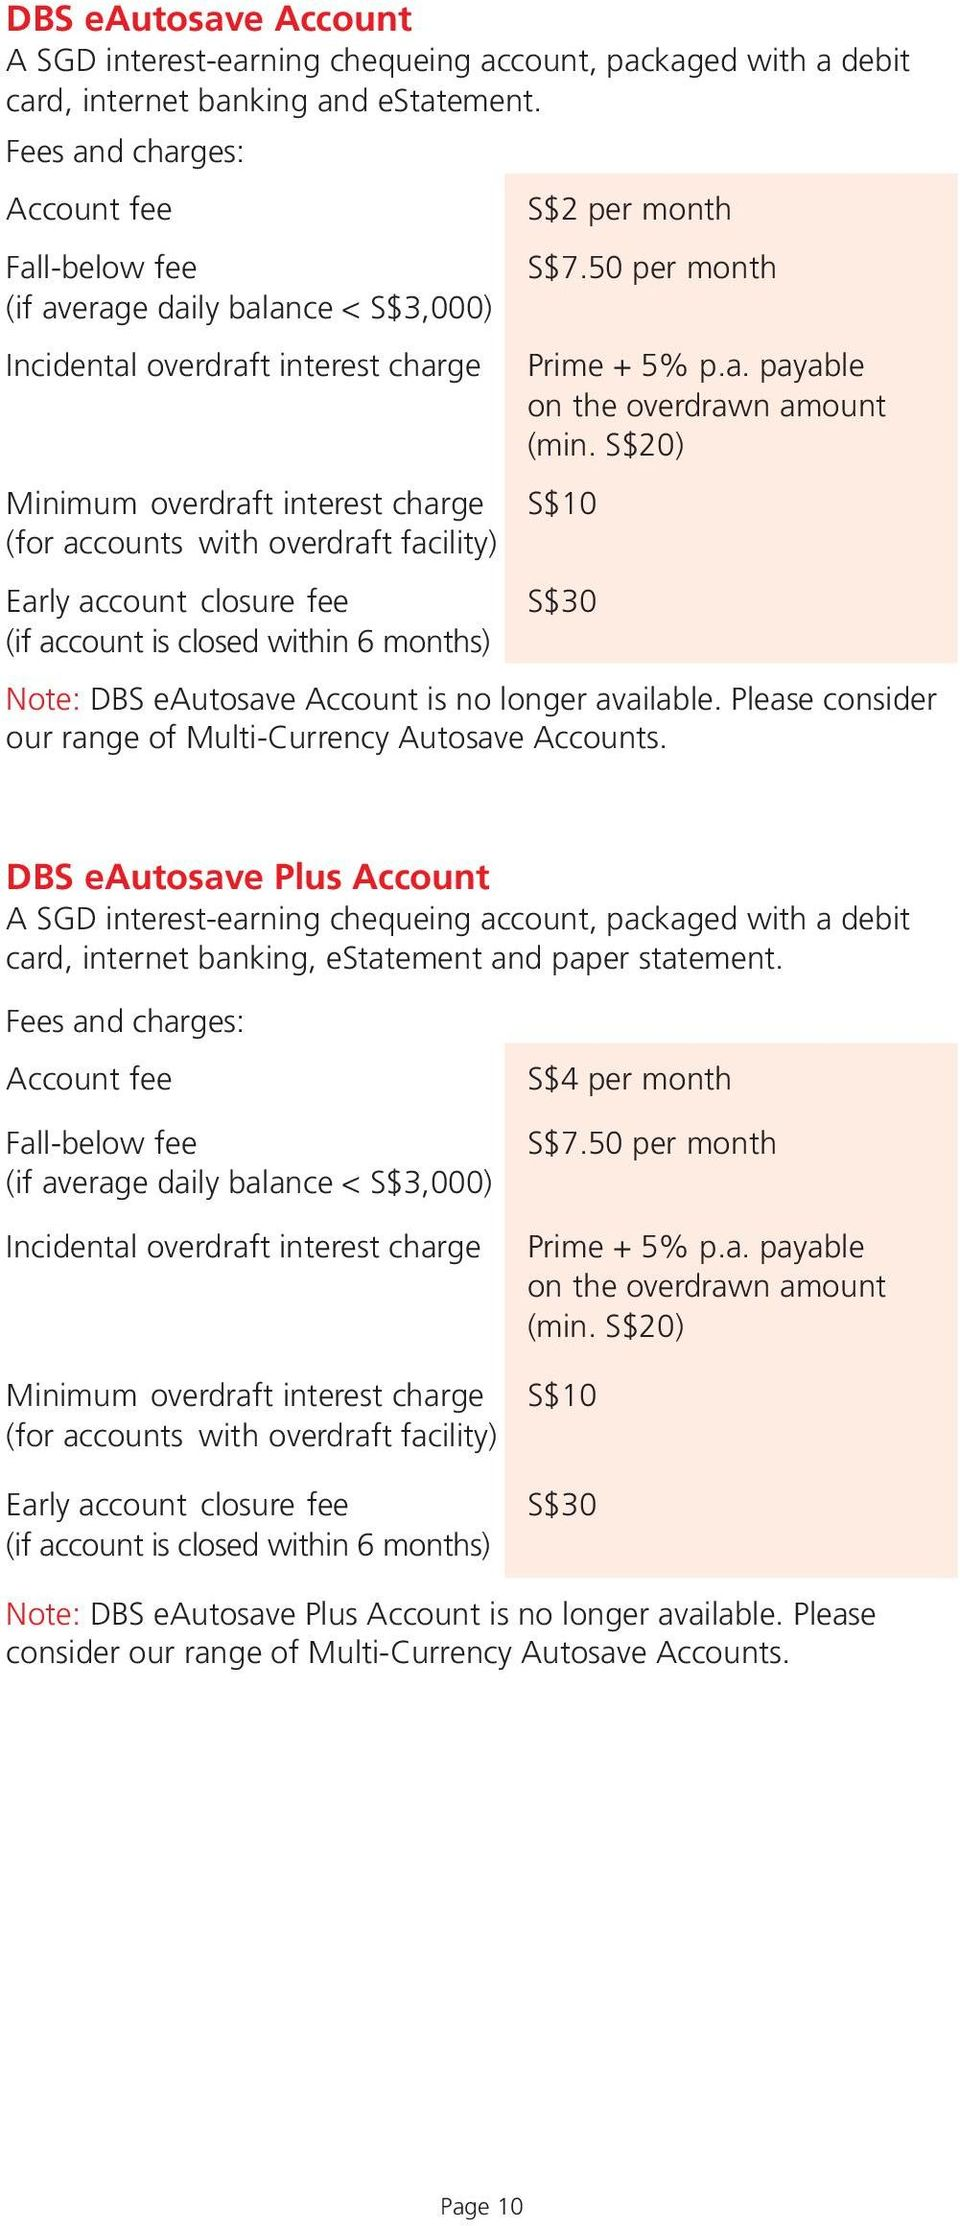 What Are Paper Statement Fees?